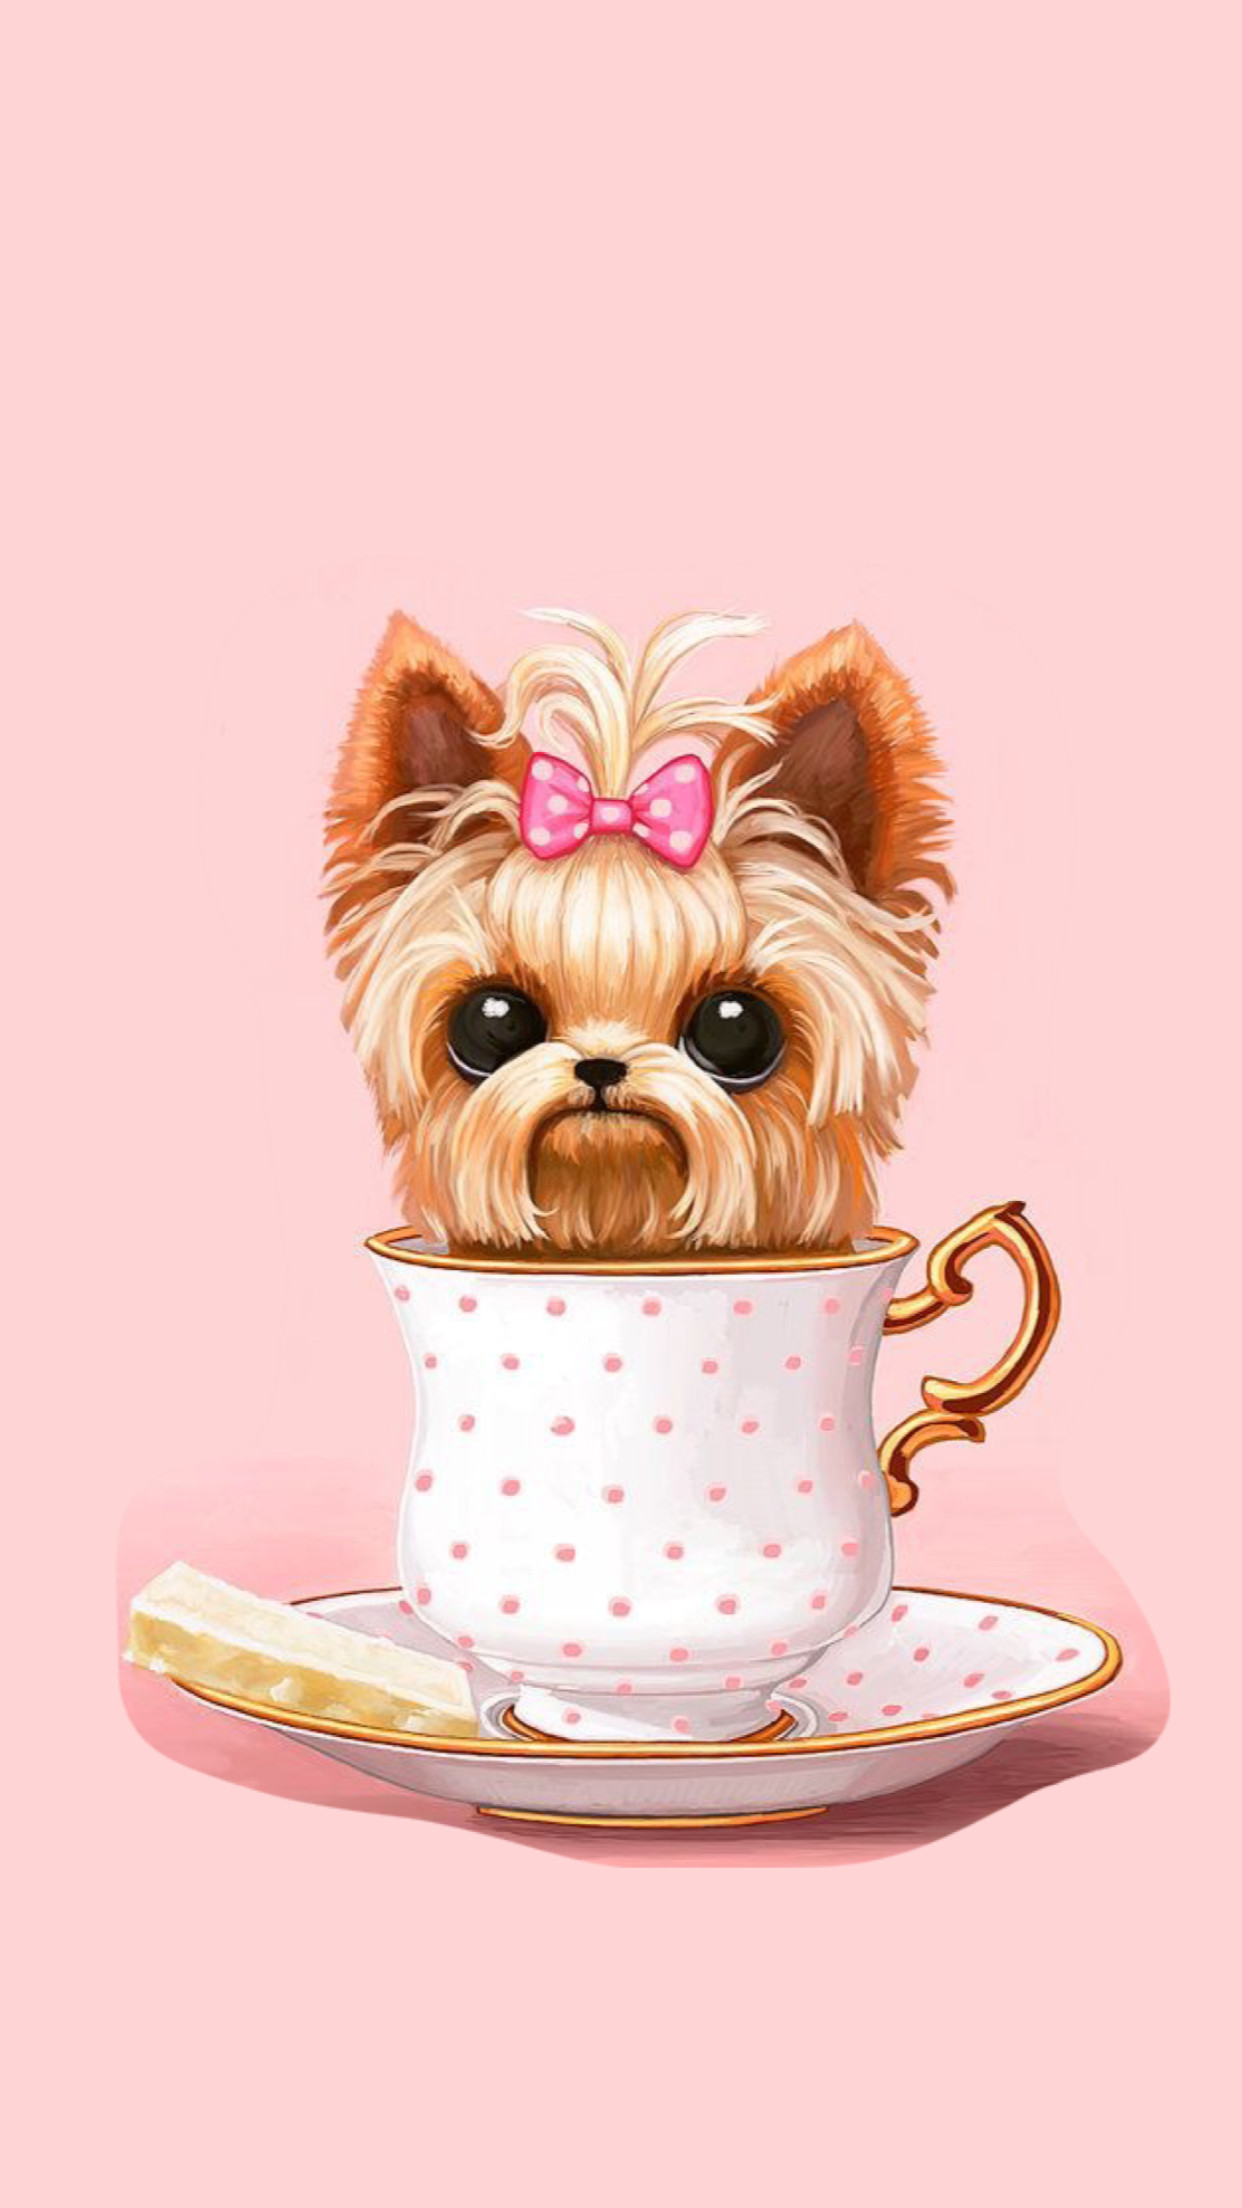 cute wallpapers yorkie iphone jojo apple paris girly backgrounds background dog teacup yorkshire puppy pink siwa perro fondos perros cross